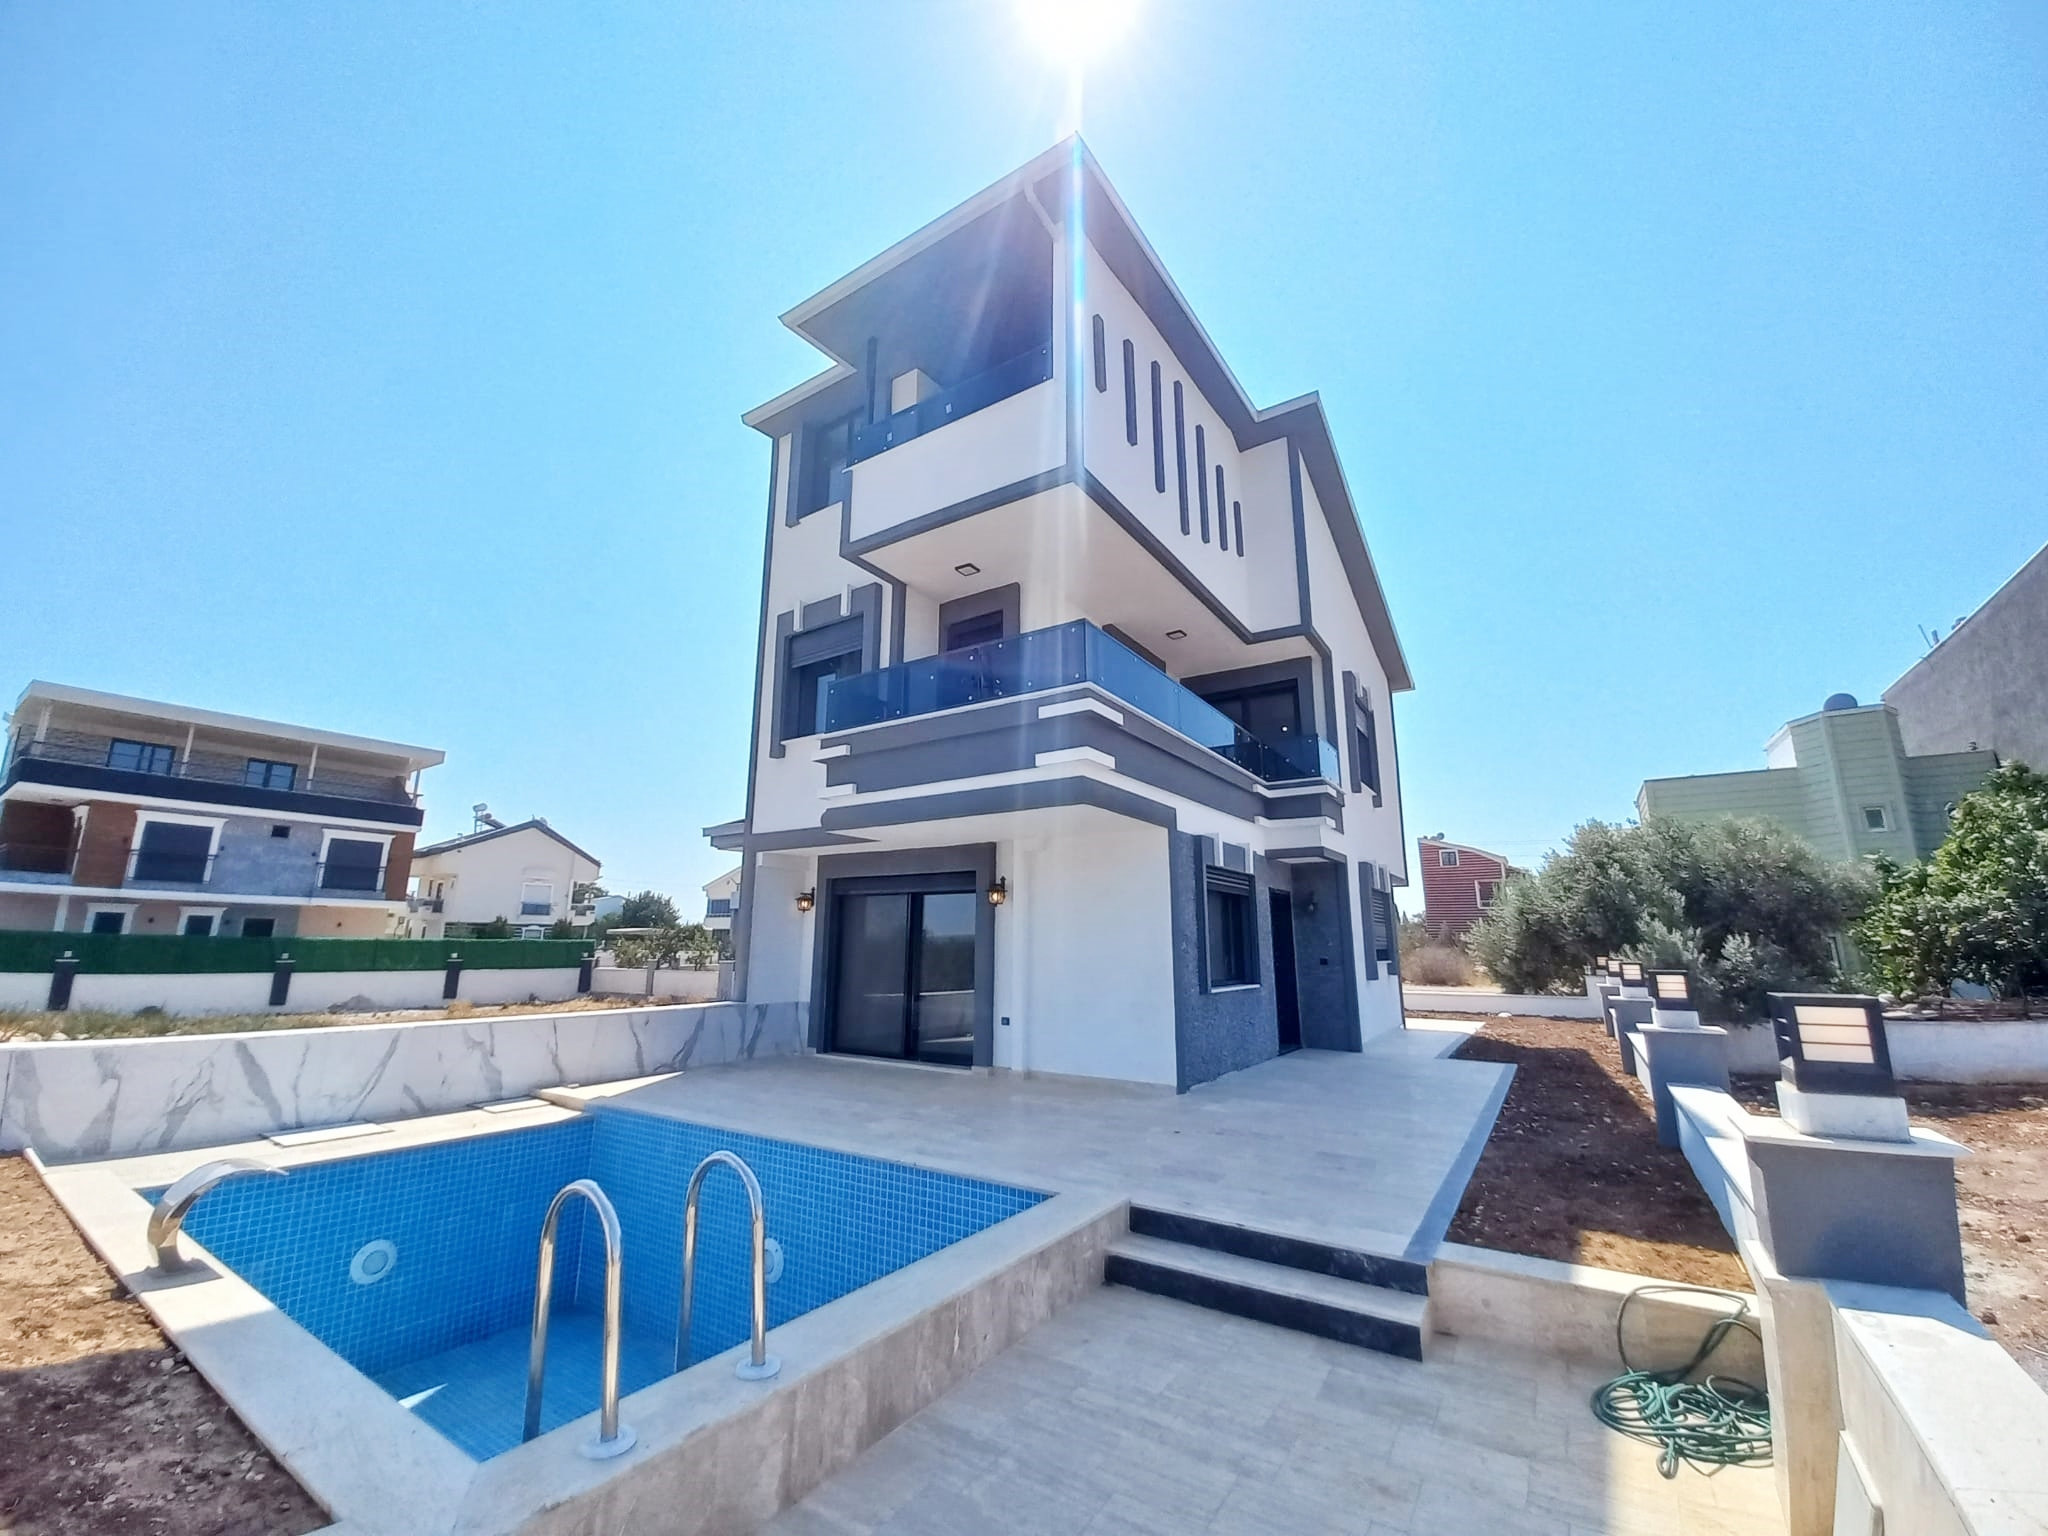 2nd Home in Turkey – 3-Bed Detached Villa with Private Pool in Yesilkent Didim